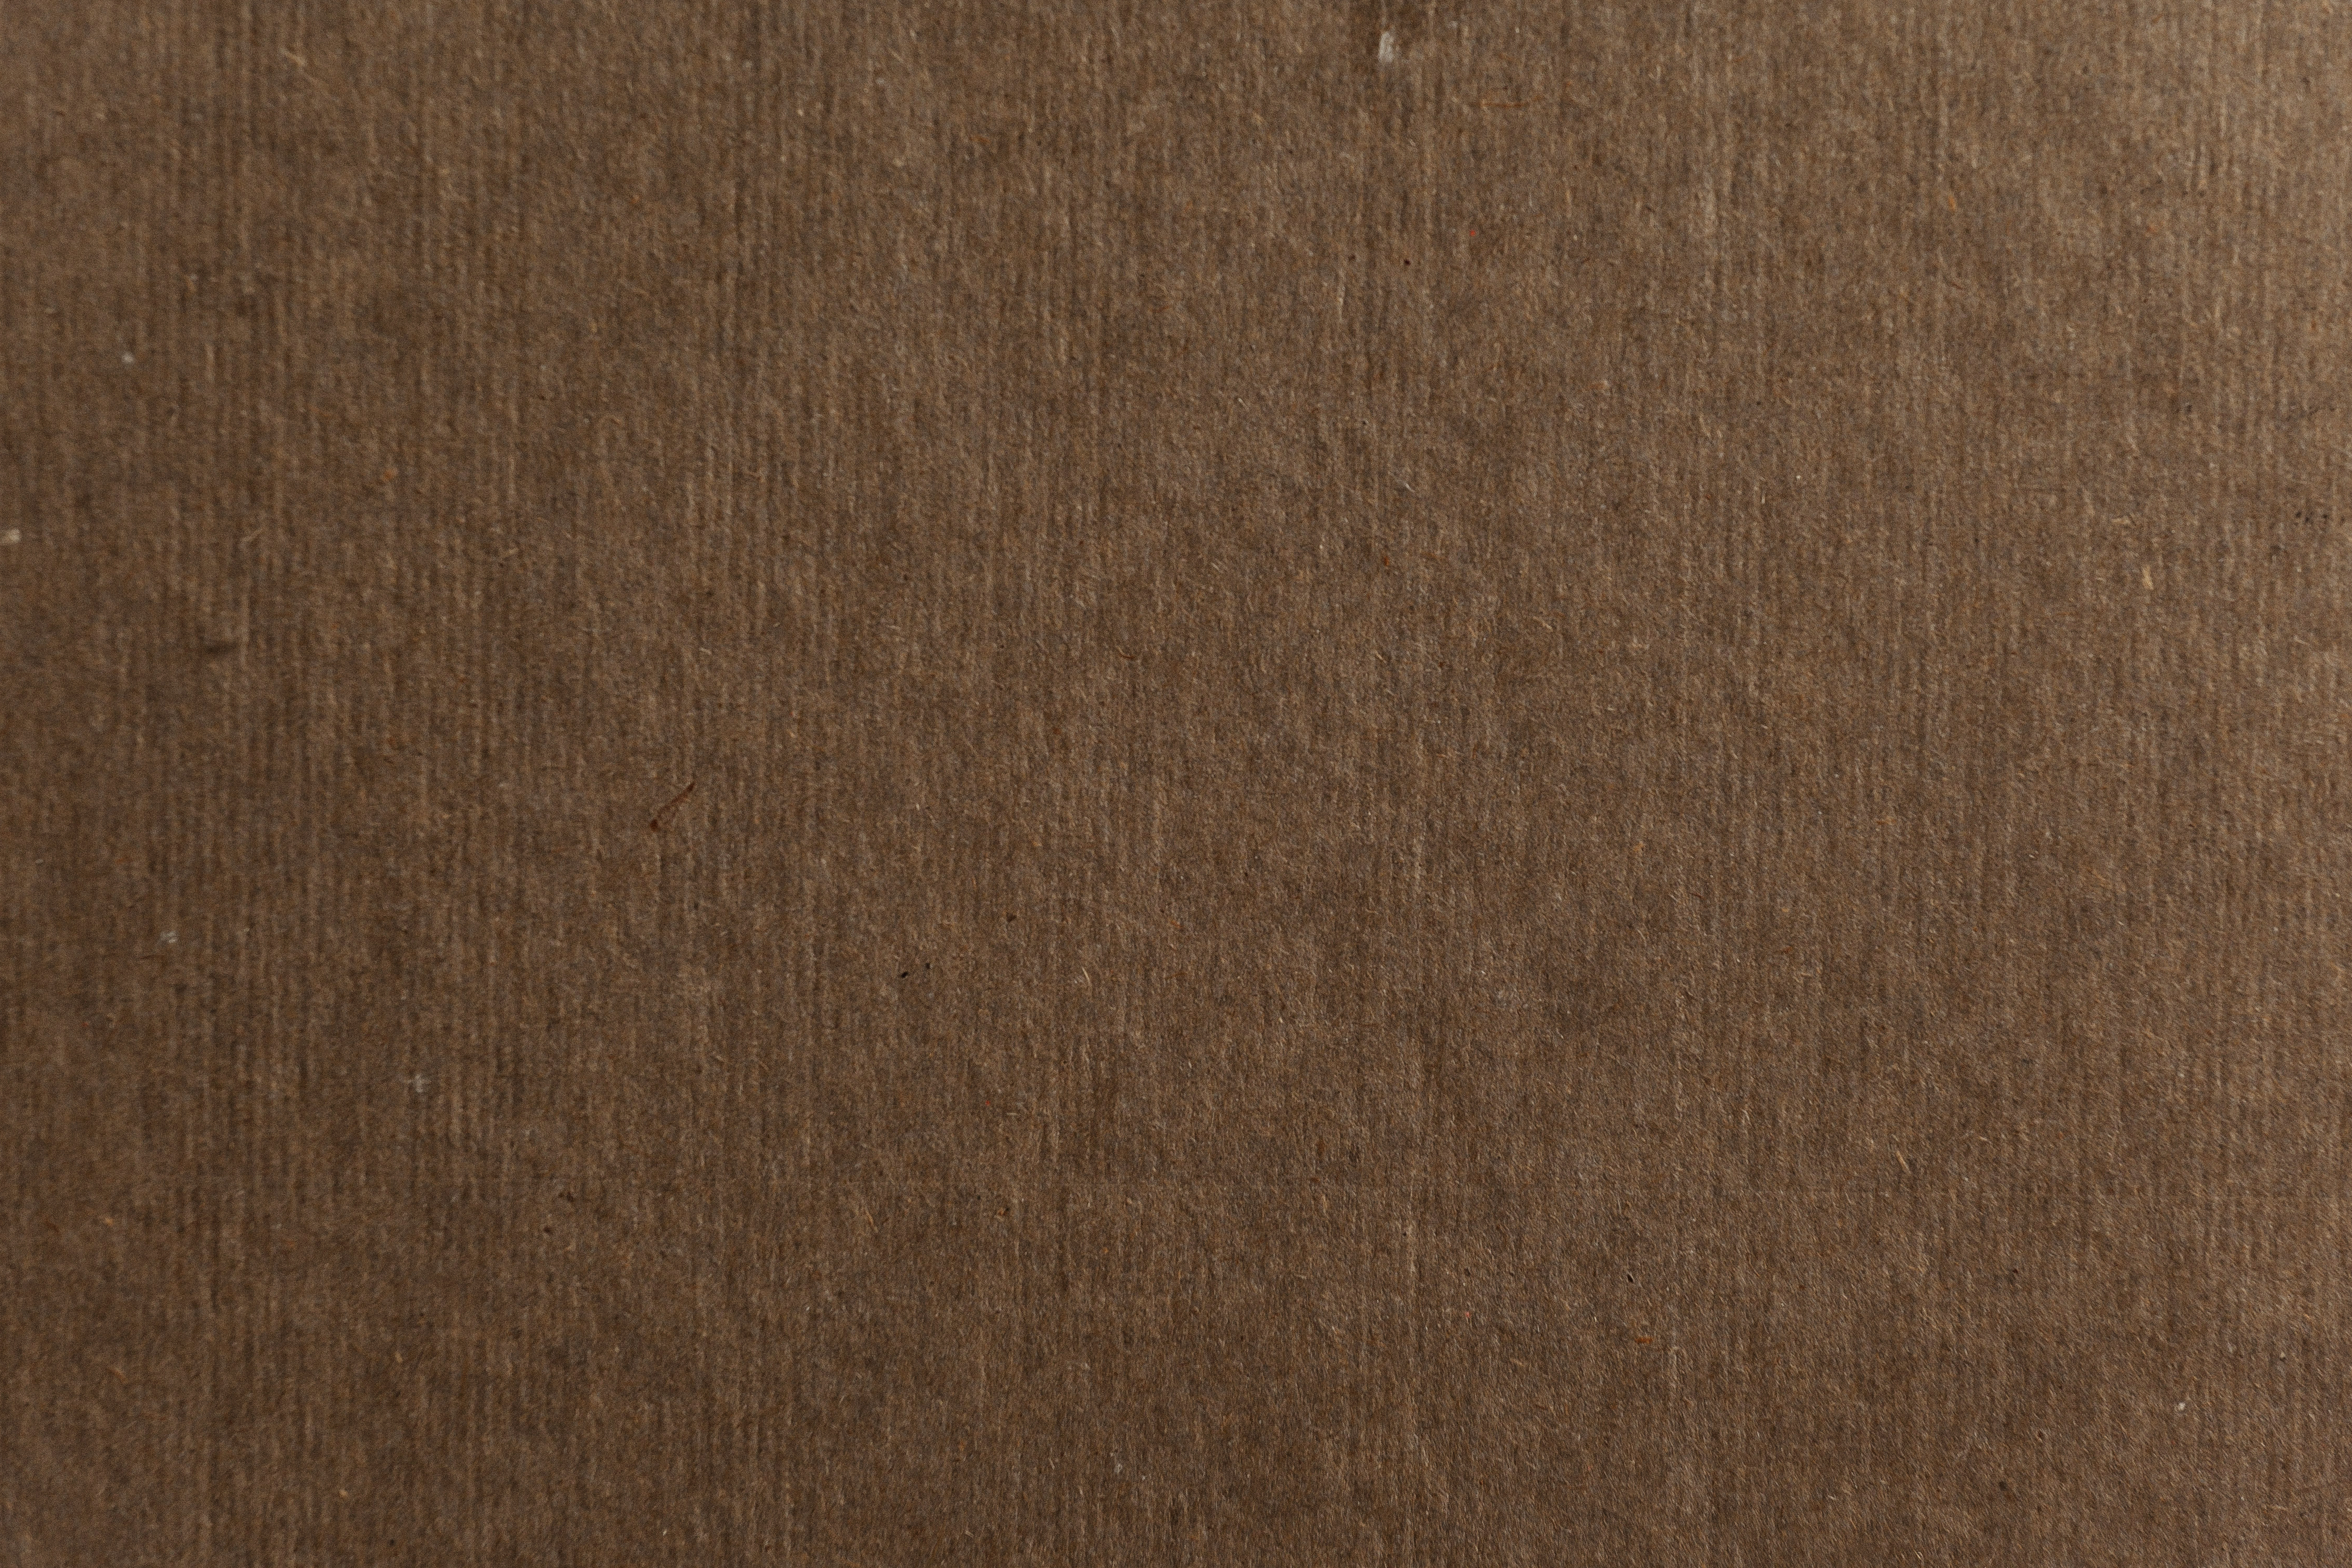 Brown paper texture photo